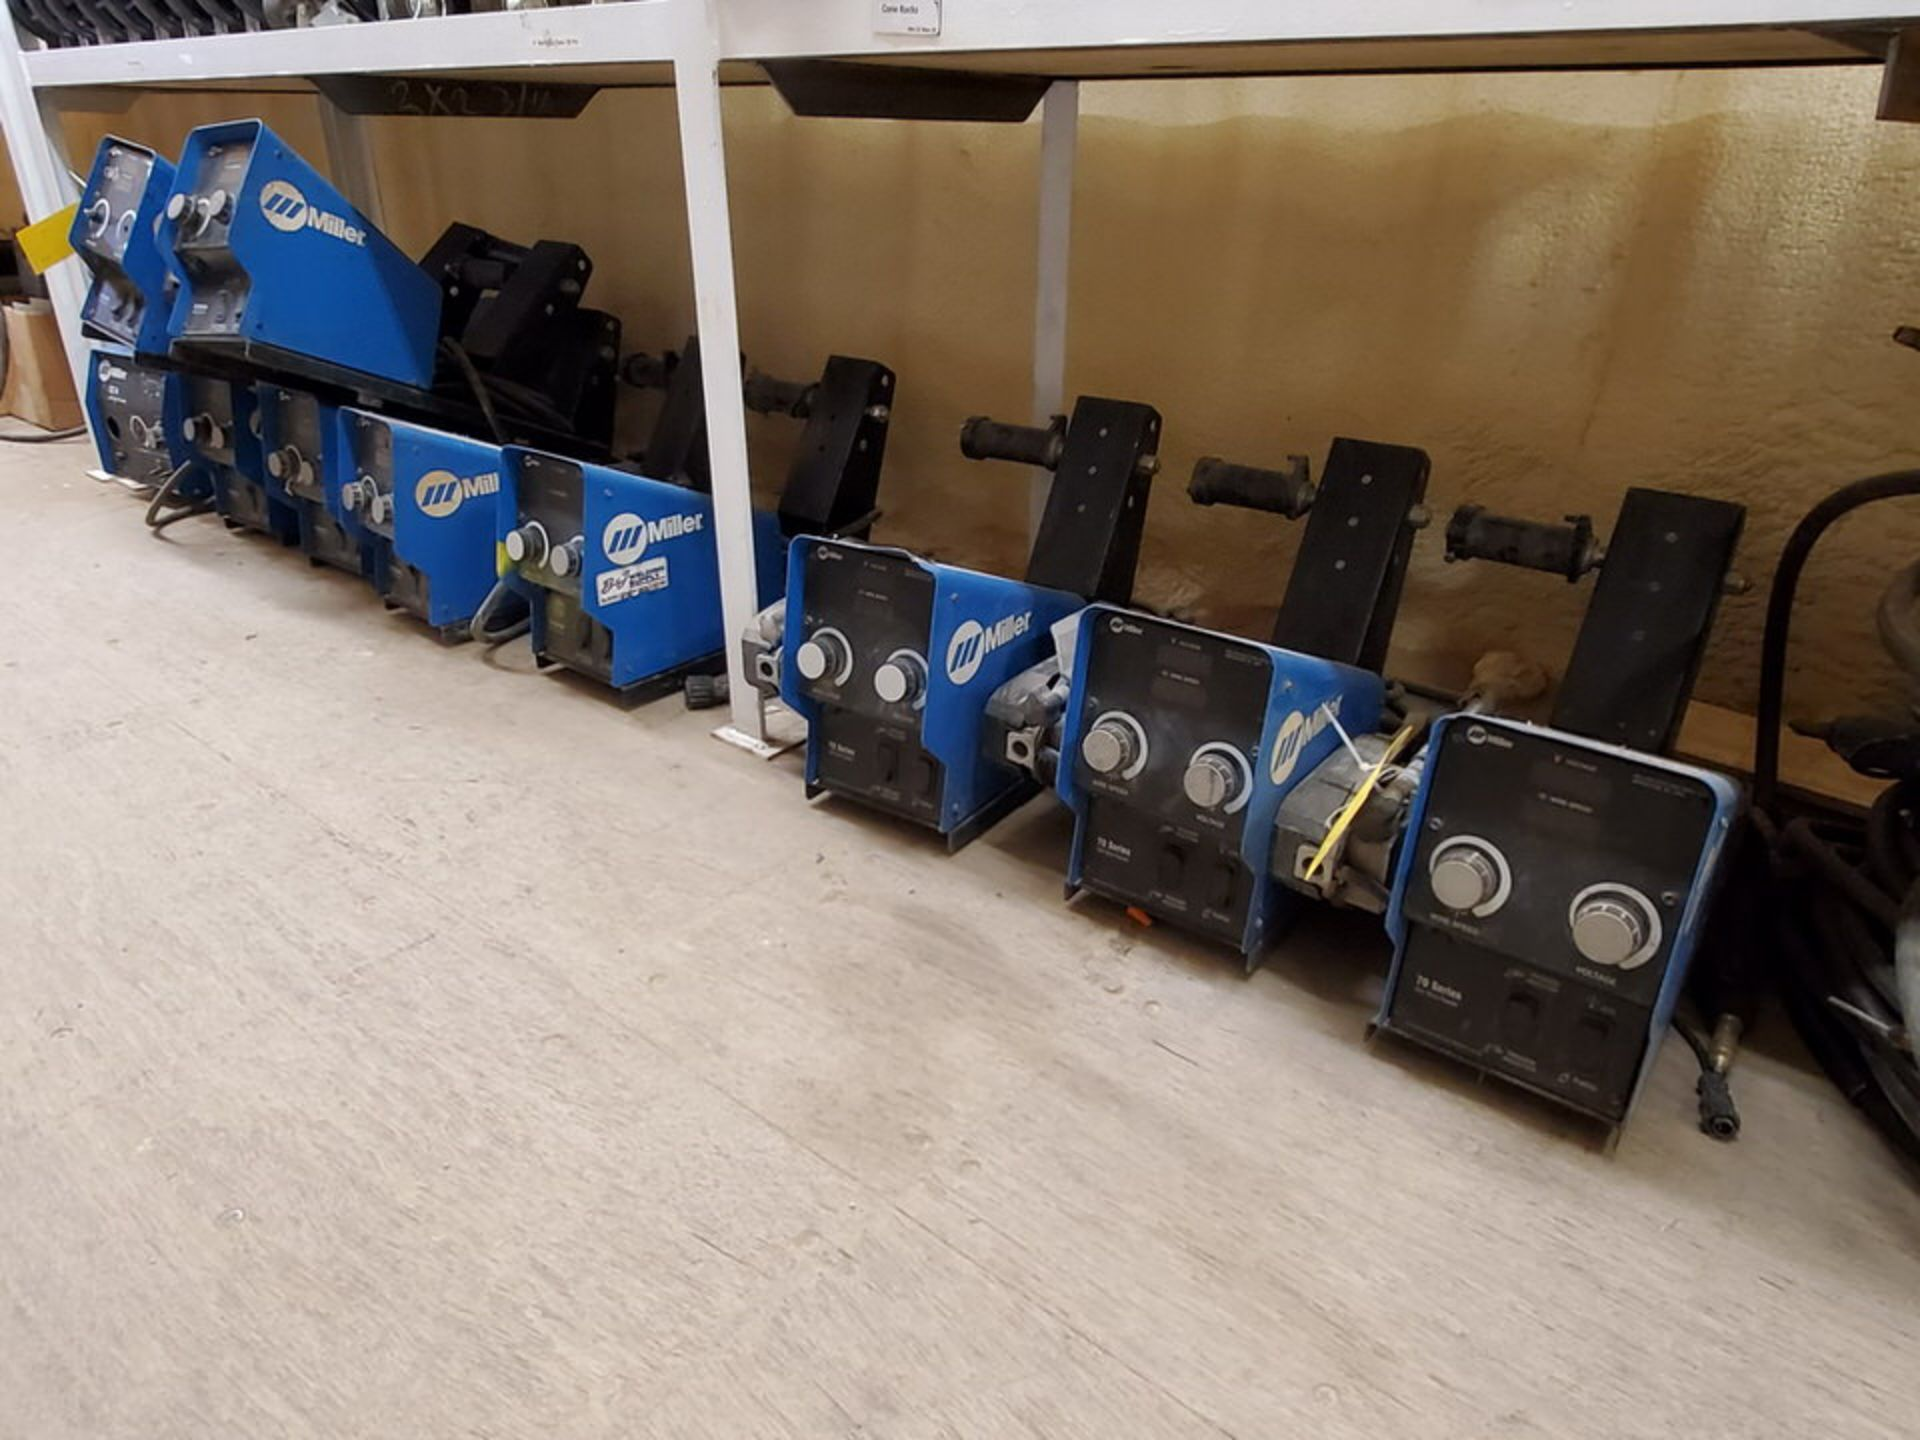 Miller 70 Series (9) 24V Wire Feeders W/ (1) 22A 24V Wire Feeder - Image 2 of 6